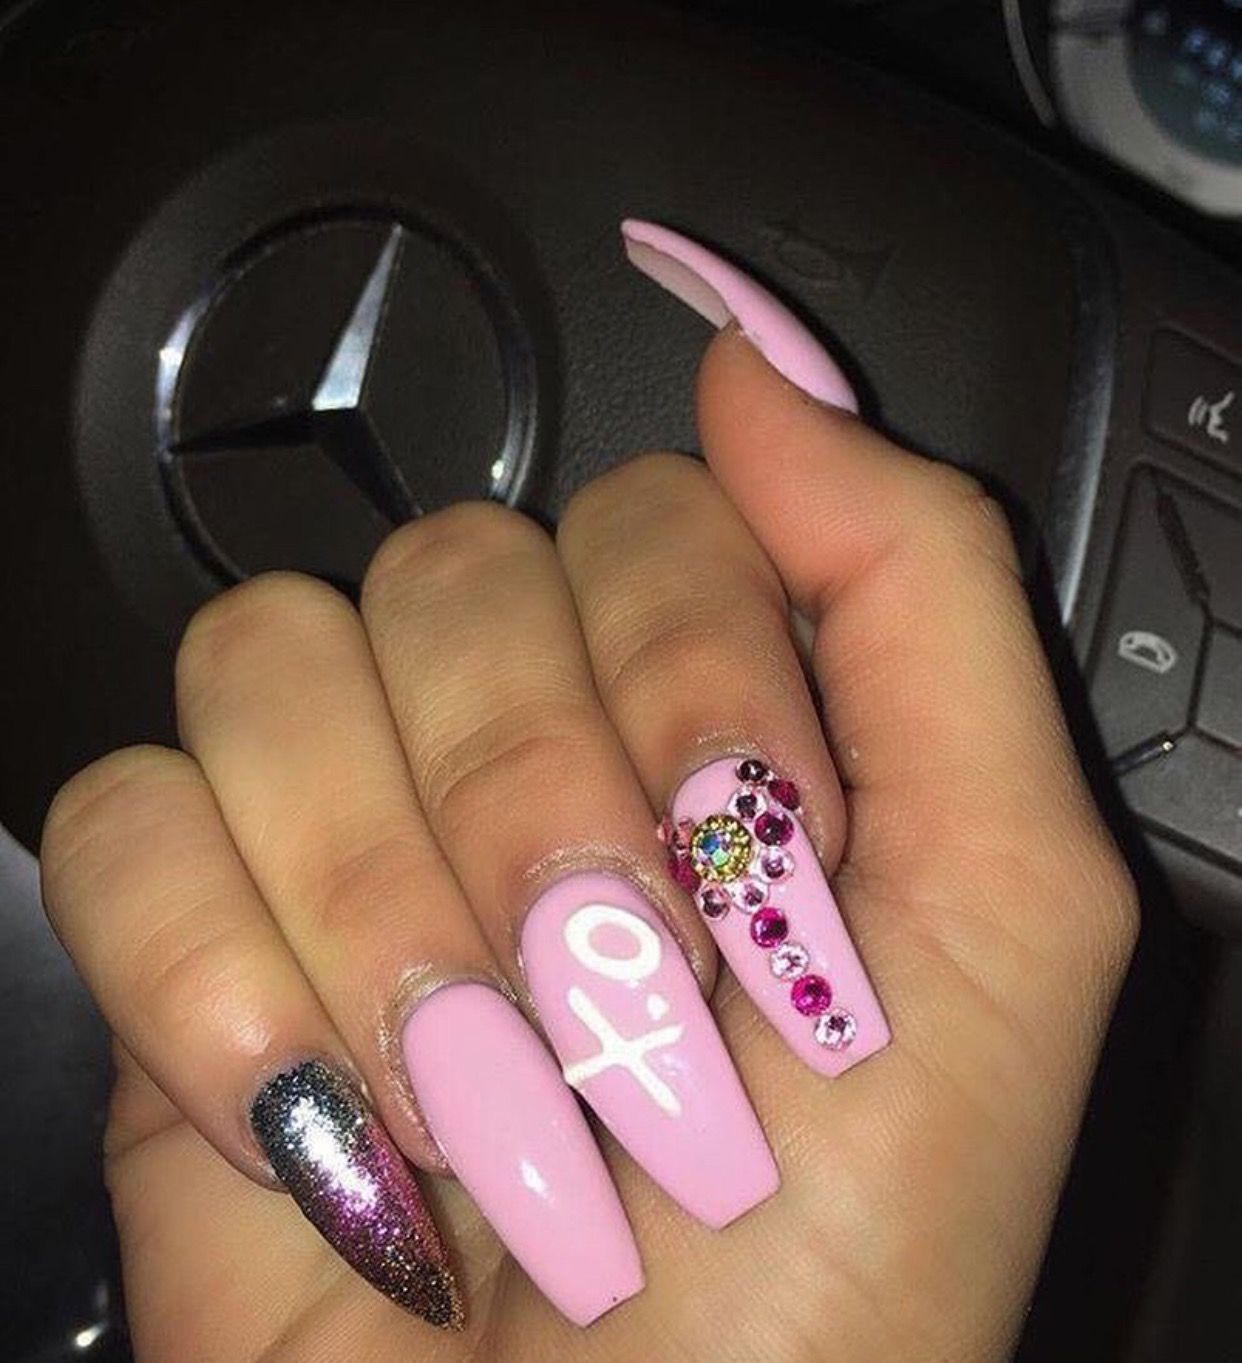 Pin by 𝕮𝖑𝖆𝖘𝖘𝖞.𝕲𝖆𝖓𝖌𝖘𝖙𝖆𝖆🥀 on ACRYLIC NAILS☔️⚡️ | Nails, Diva ...